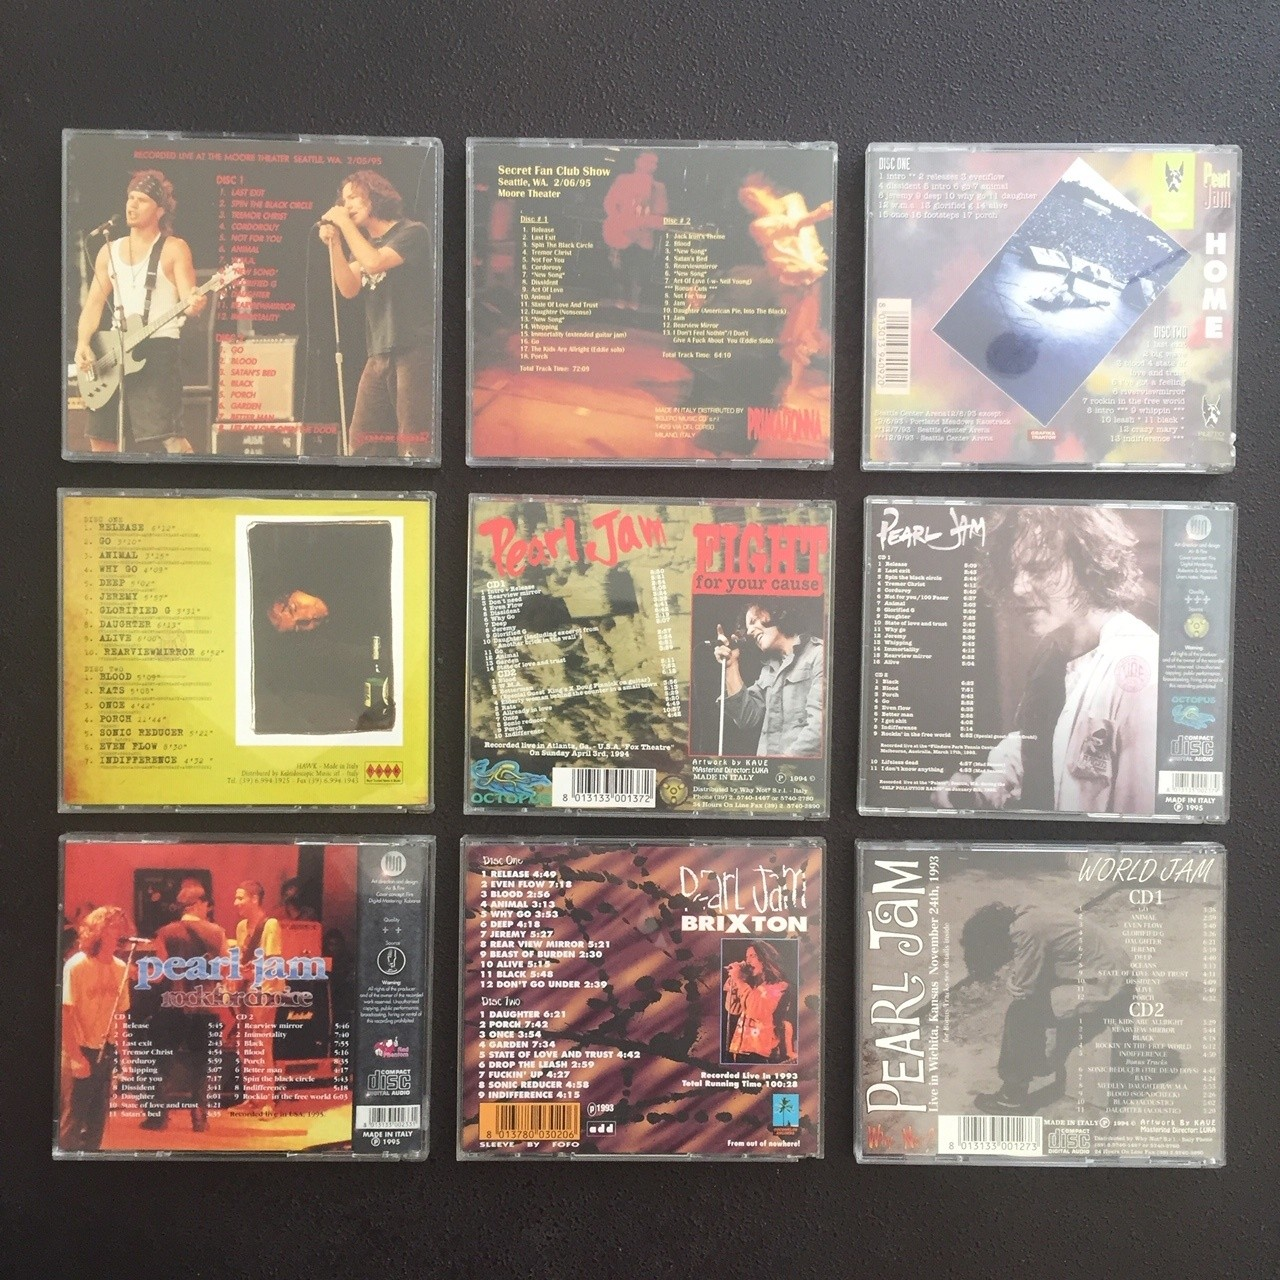 Pearl Jam Bootlegs (14 Items) | Collectionzz